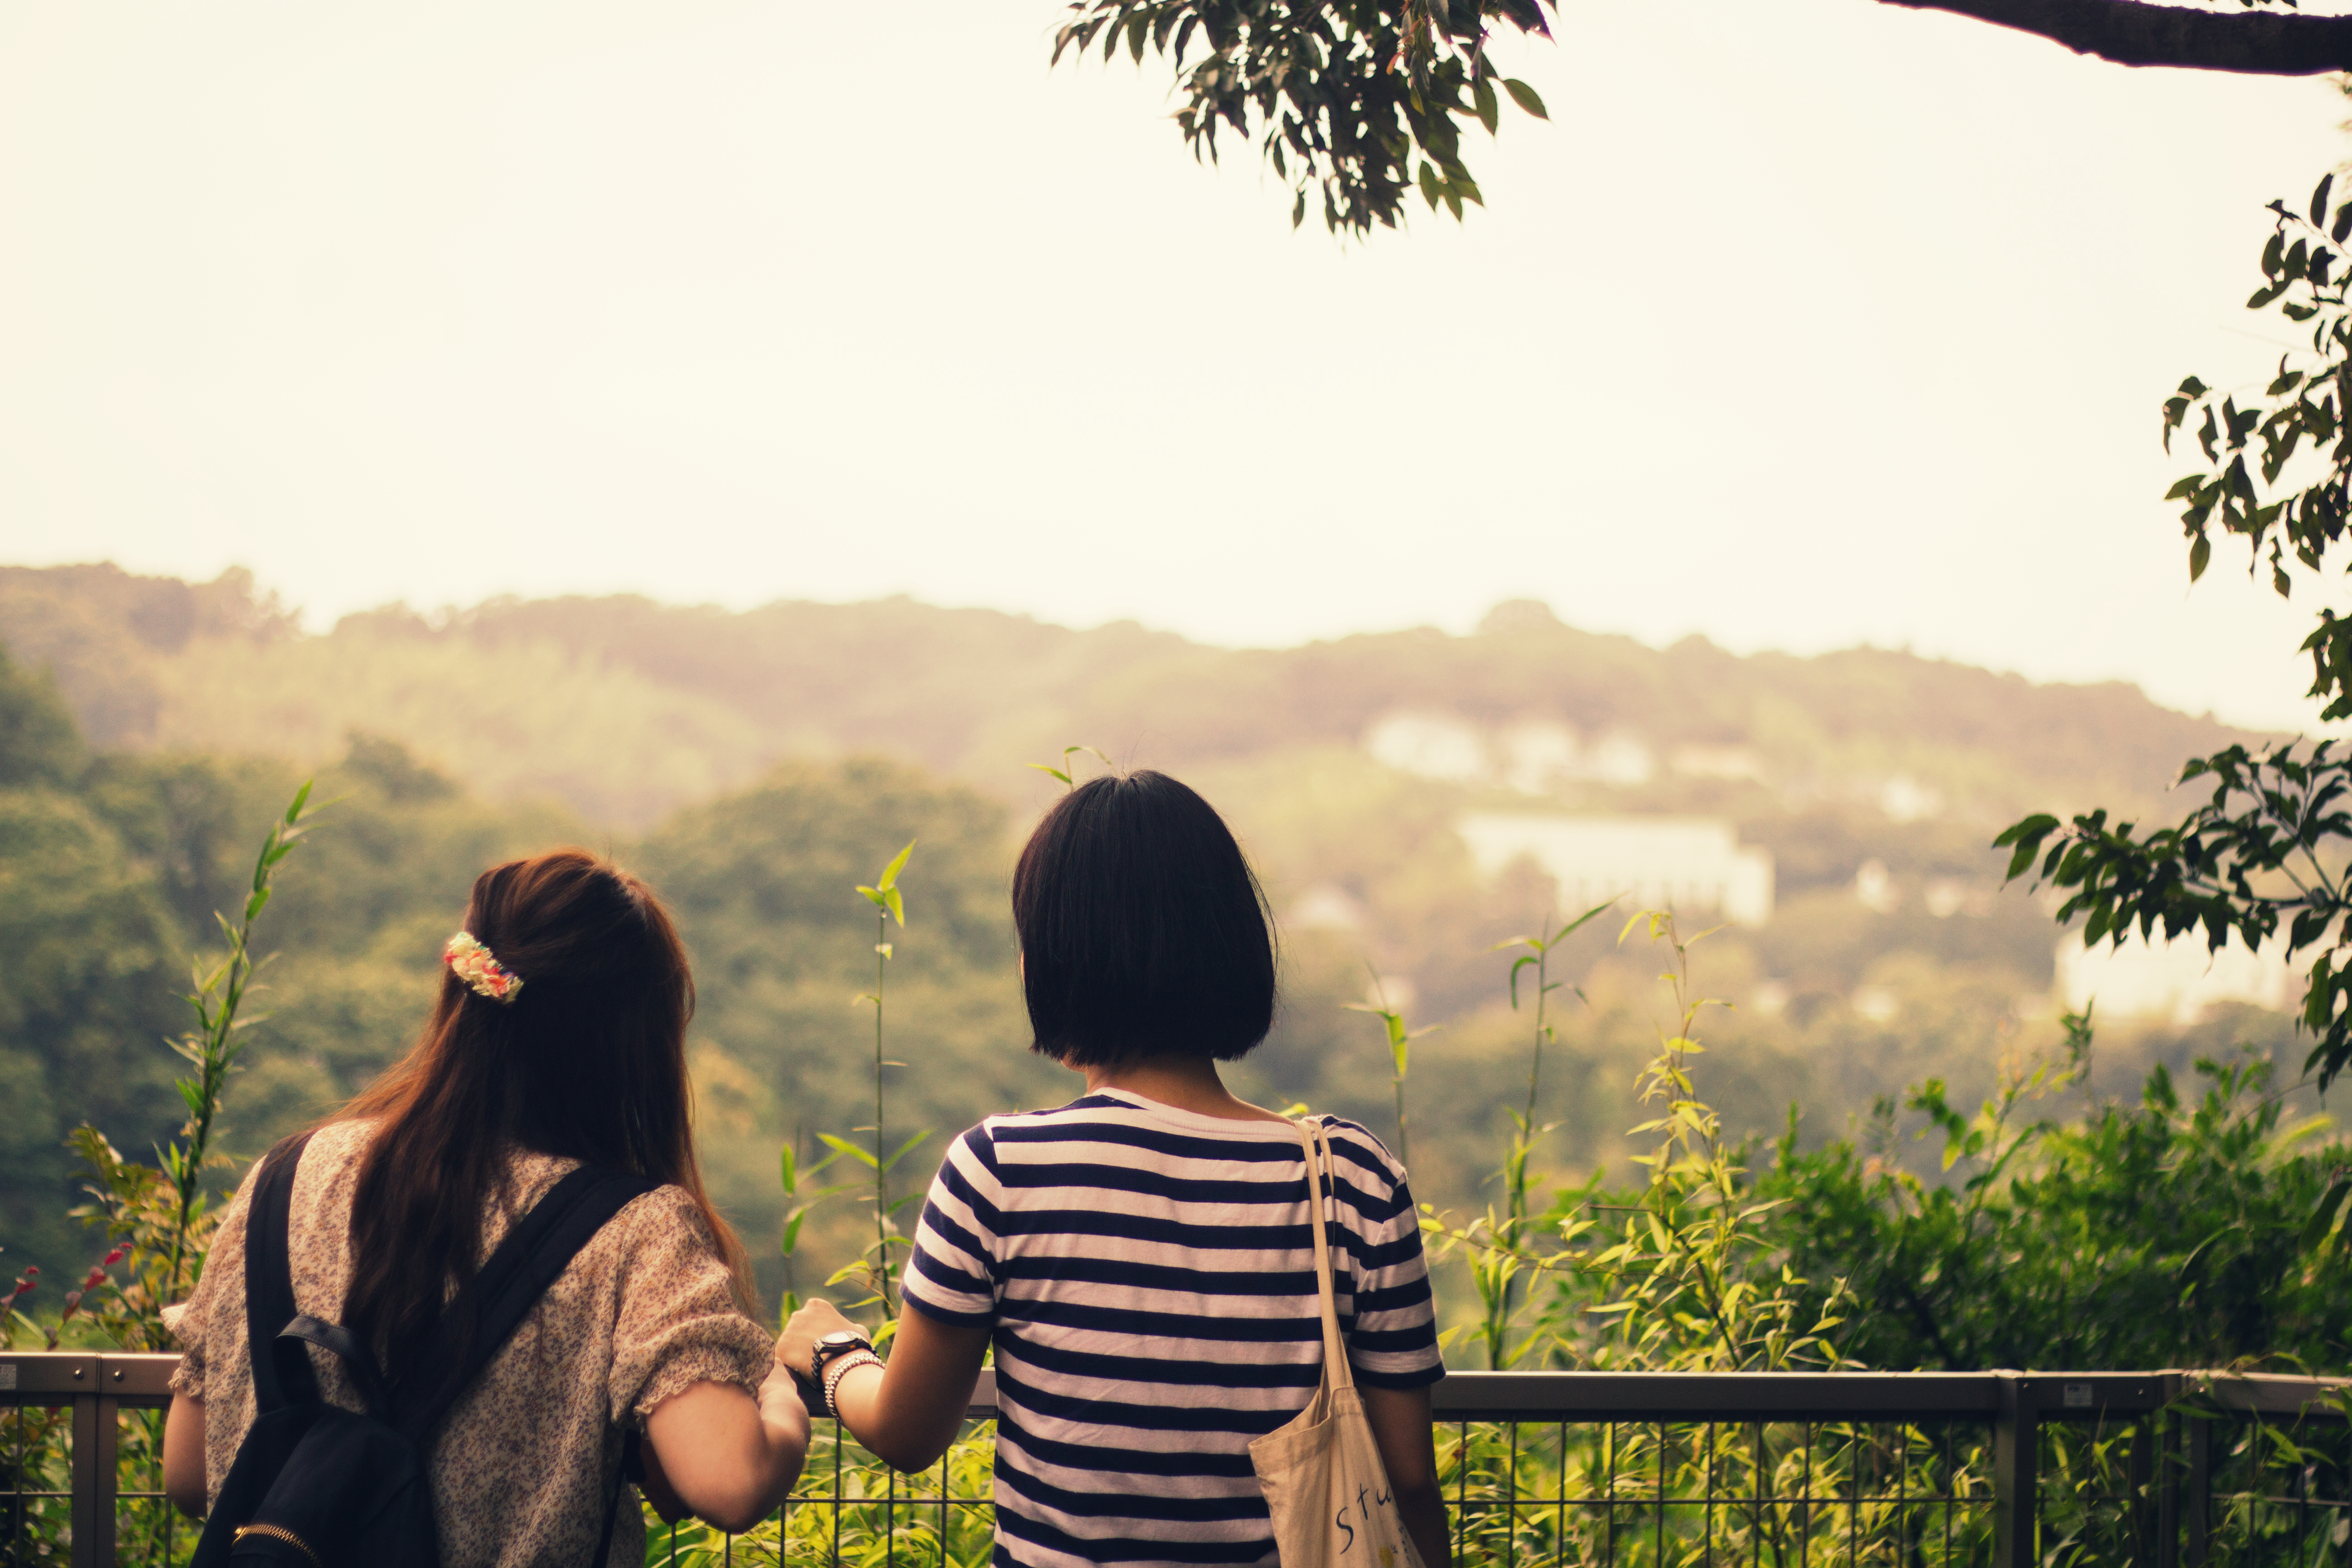 Two girls overlooking the hillside in Kamakura, Japan.